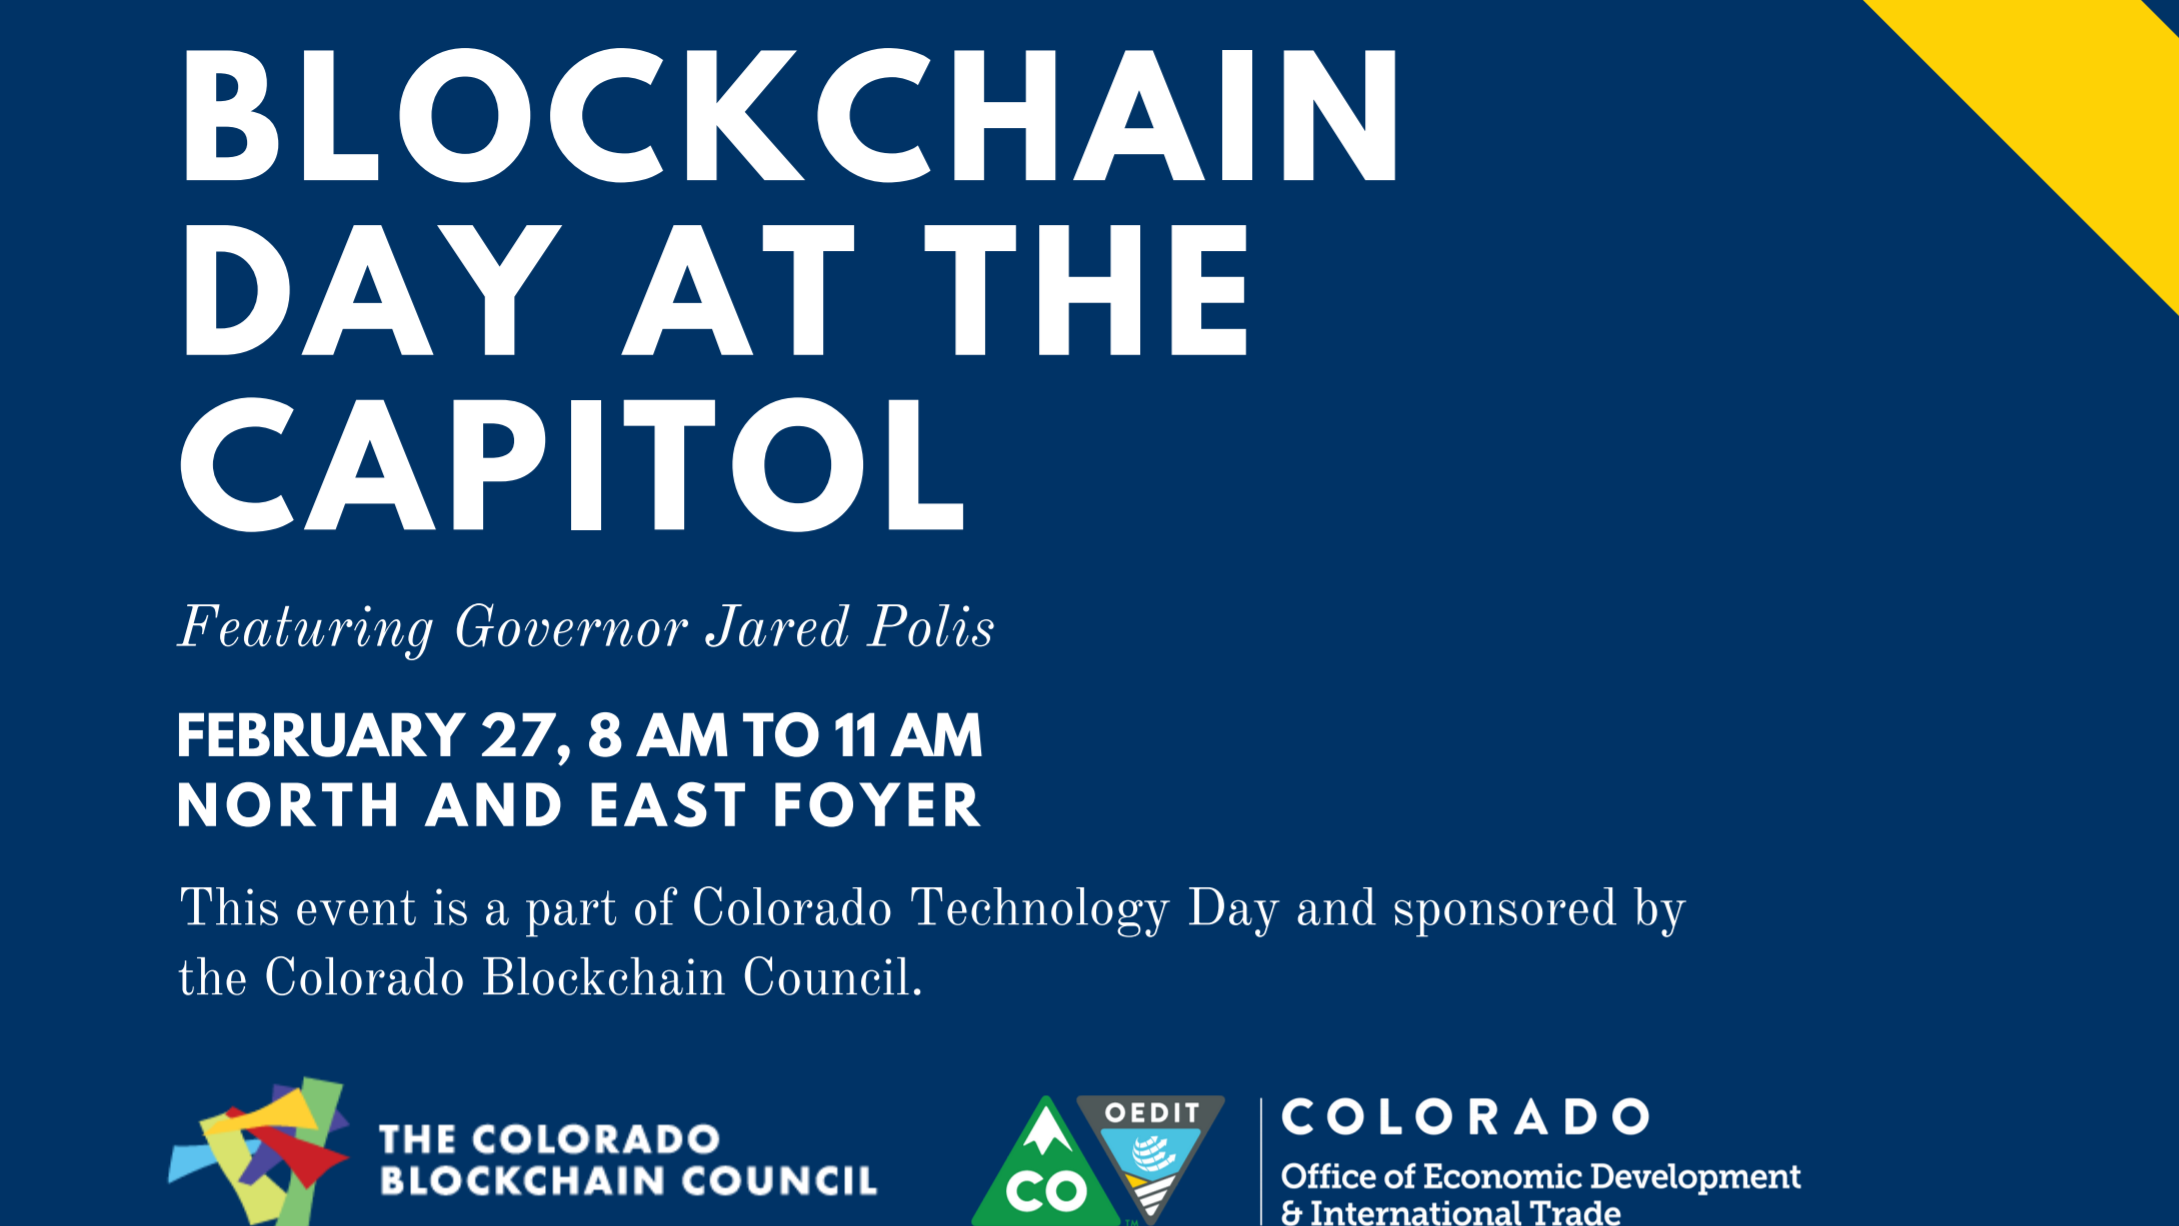 Blockchain Day at the Capitol